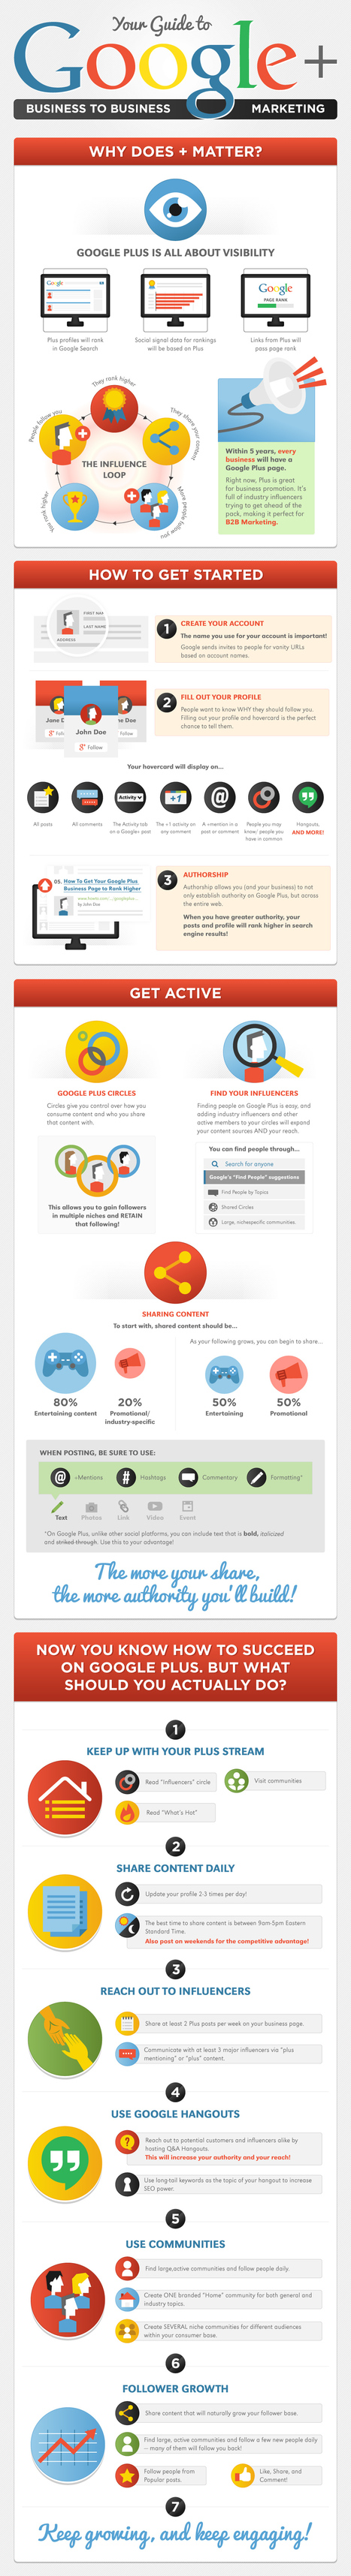 Your Guide to Google+ B2B Marketing   Google+   Scoop.it